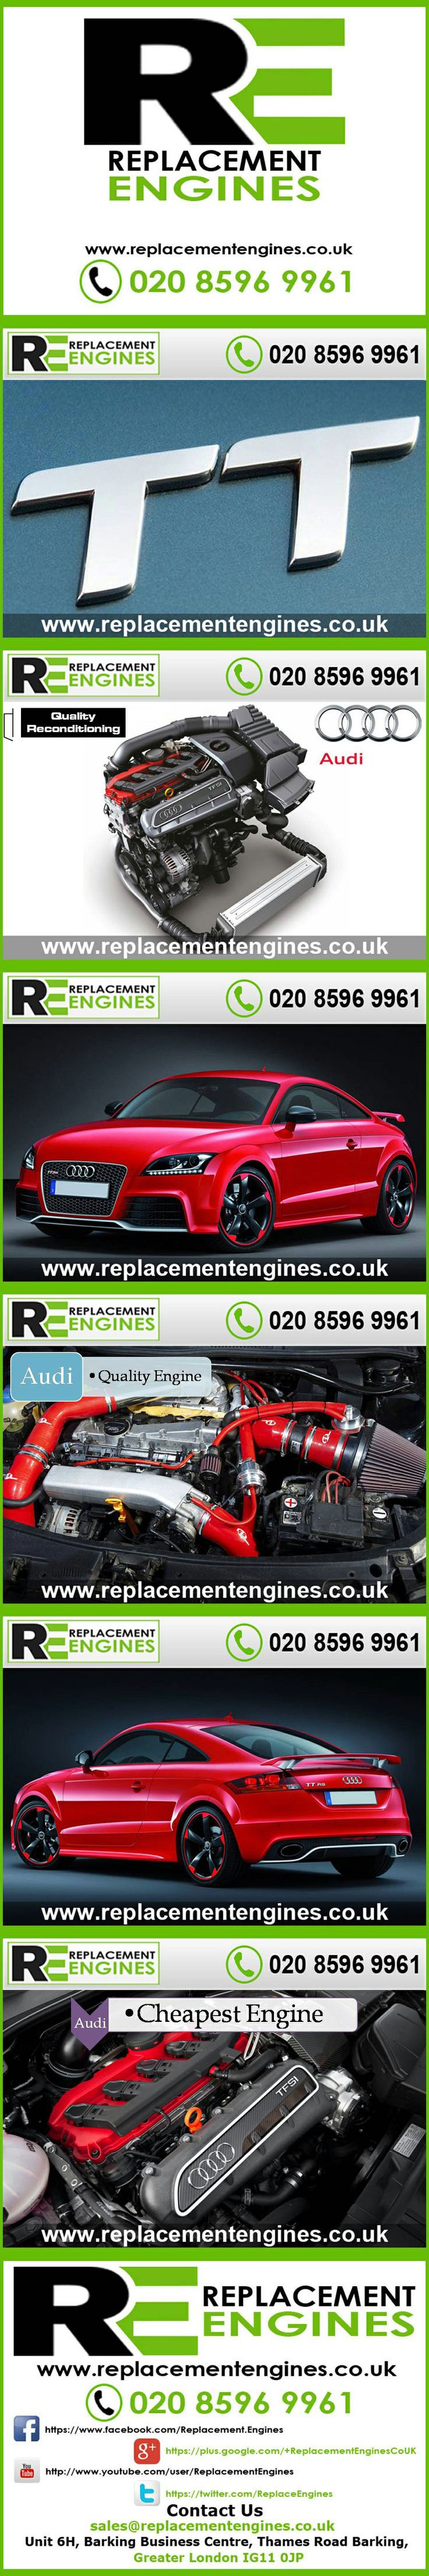 Audi TT engines for sale at the cheapest prices, we have low mileage used & reconditioned engines in stock now, ready to be delivered to anywhere in the UK or overseas, visit Replacement Engines website here.